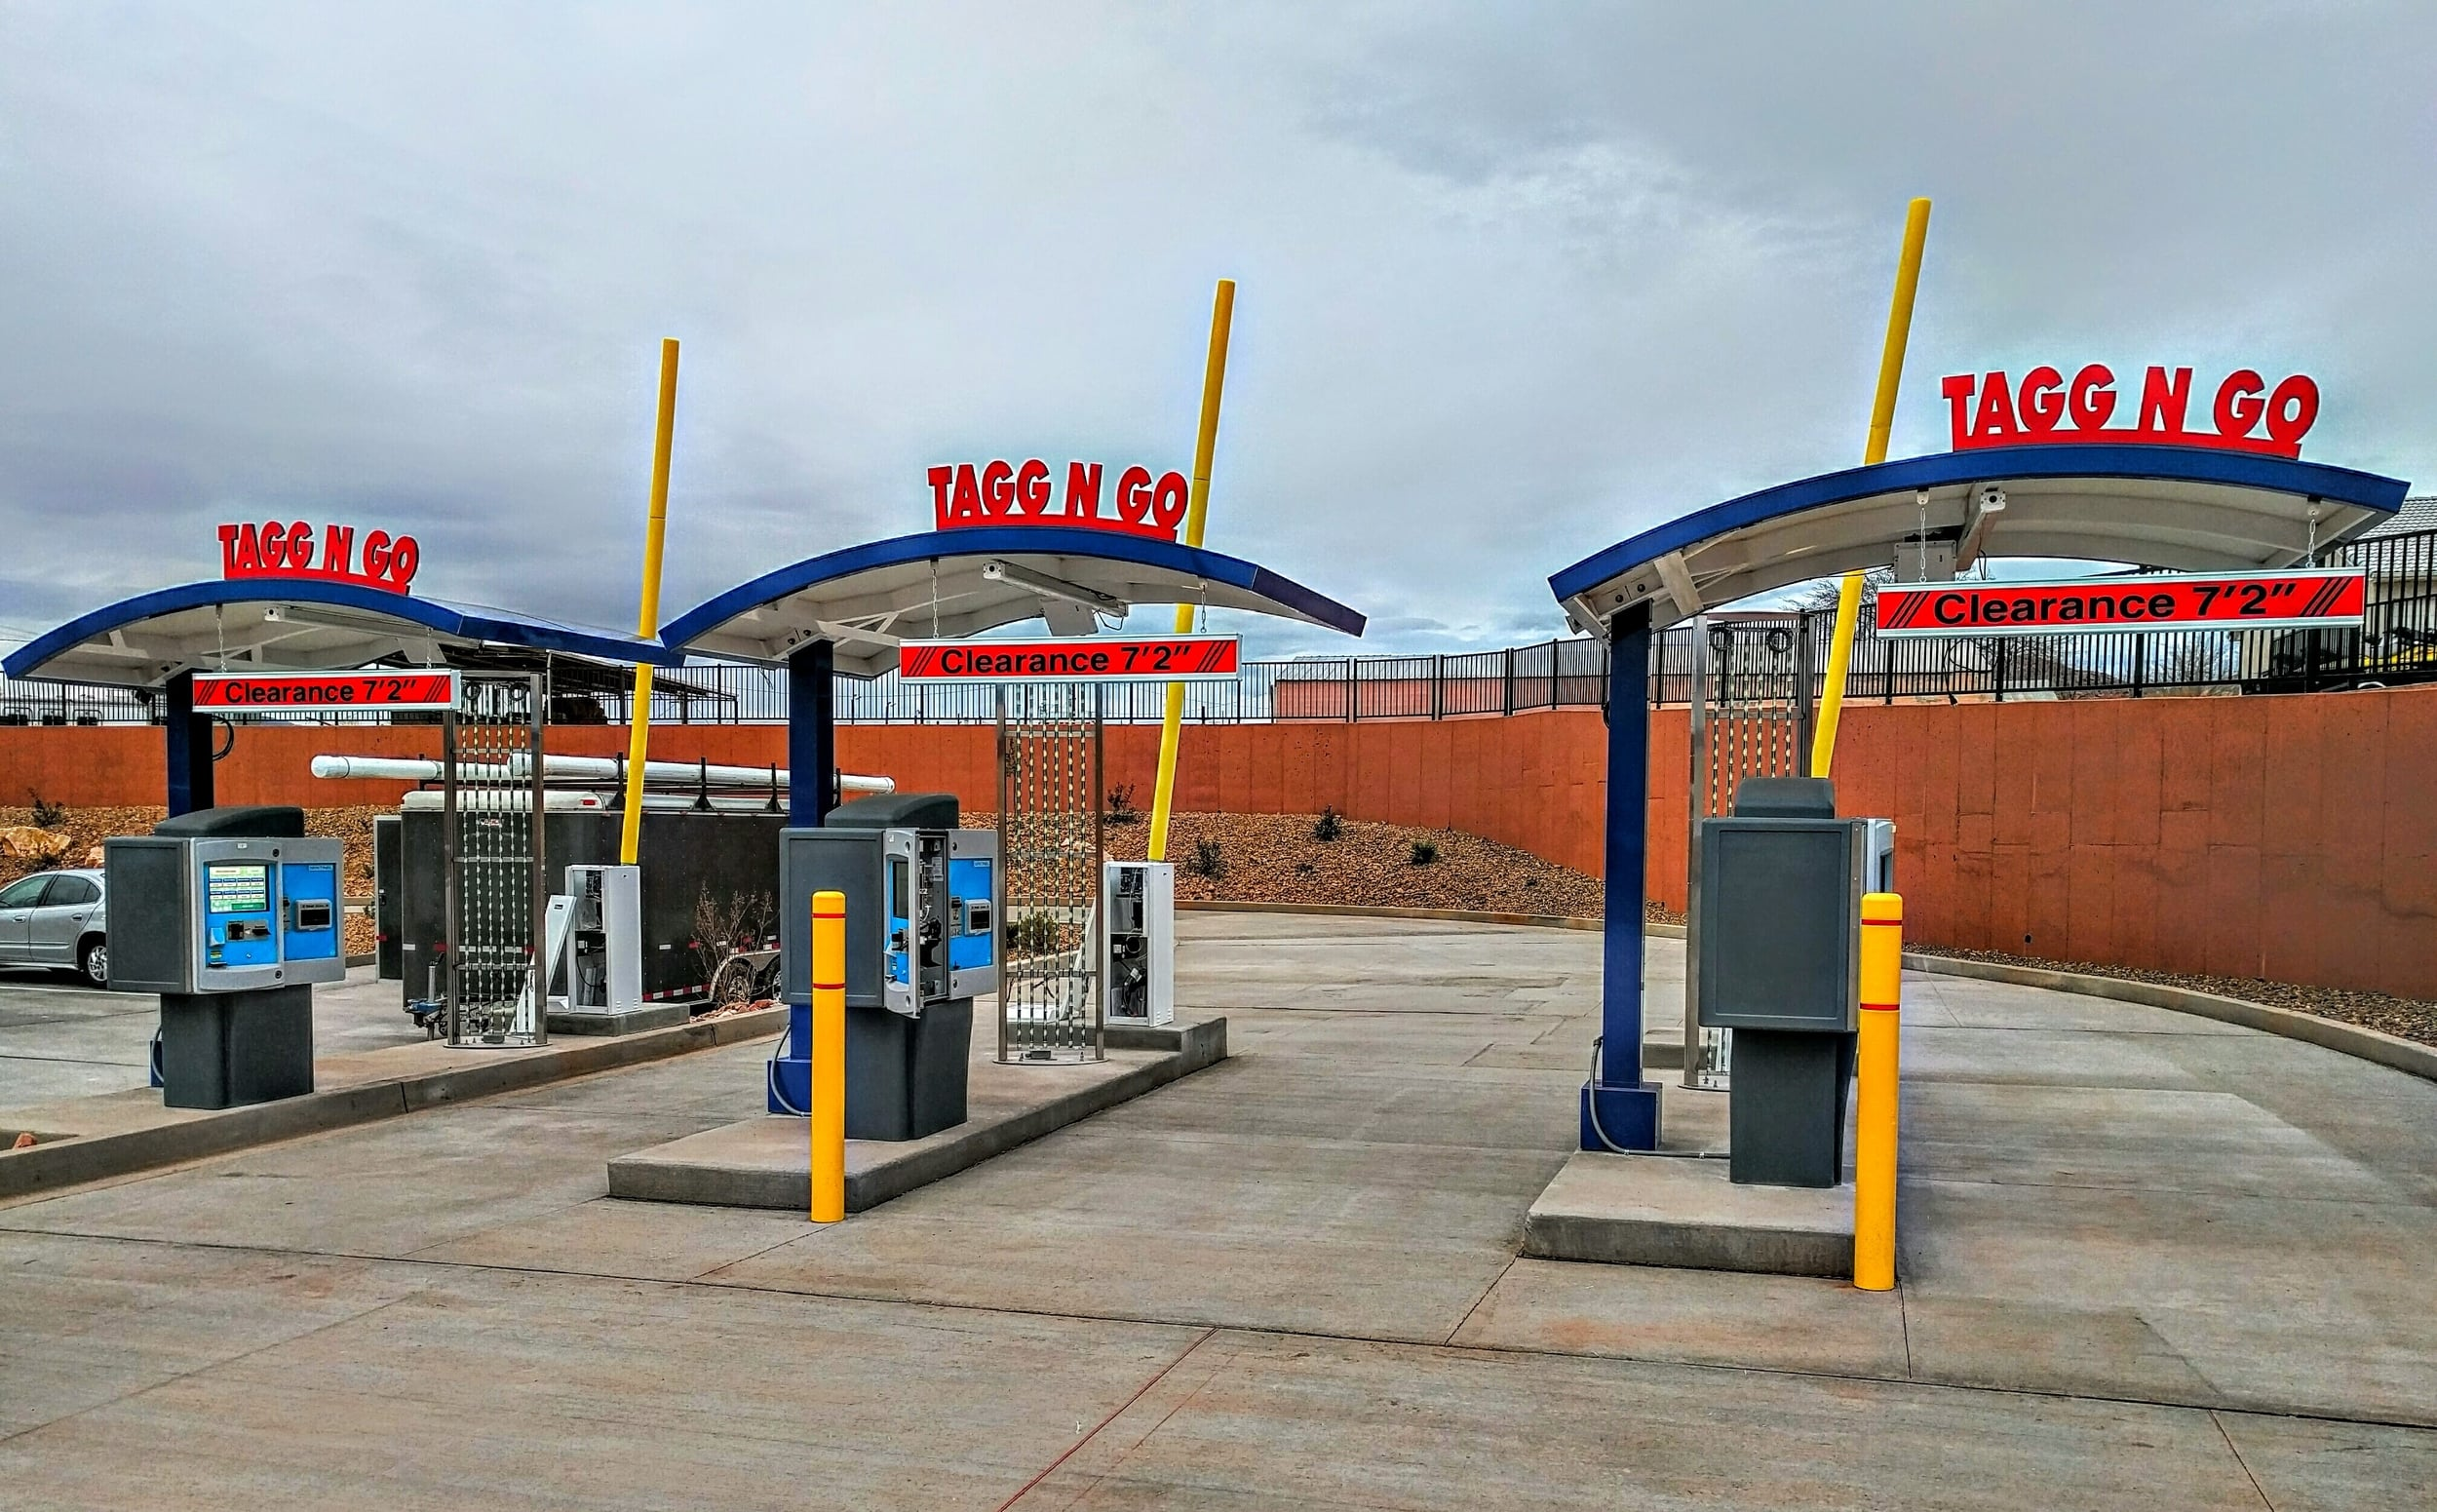 3 Unitec Sentinels pay stations with WLS RFID's